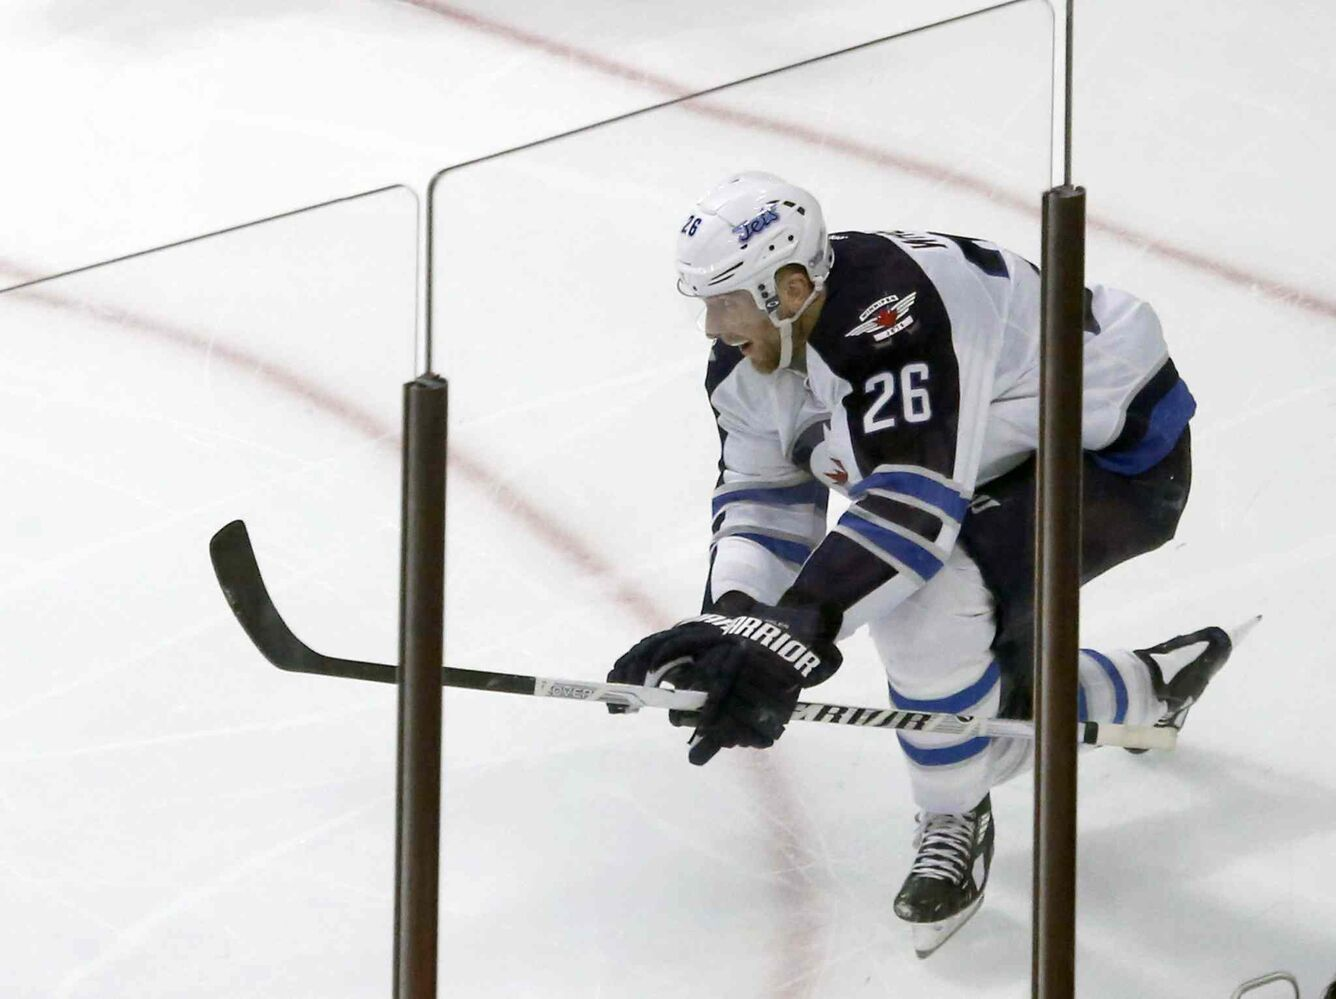 Blake Wheeler celebrates one of his two third-period goals. (Charles Rex Arbogast / The Associated Press)